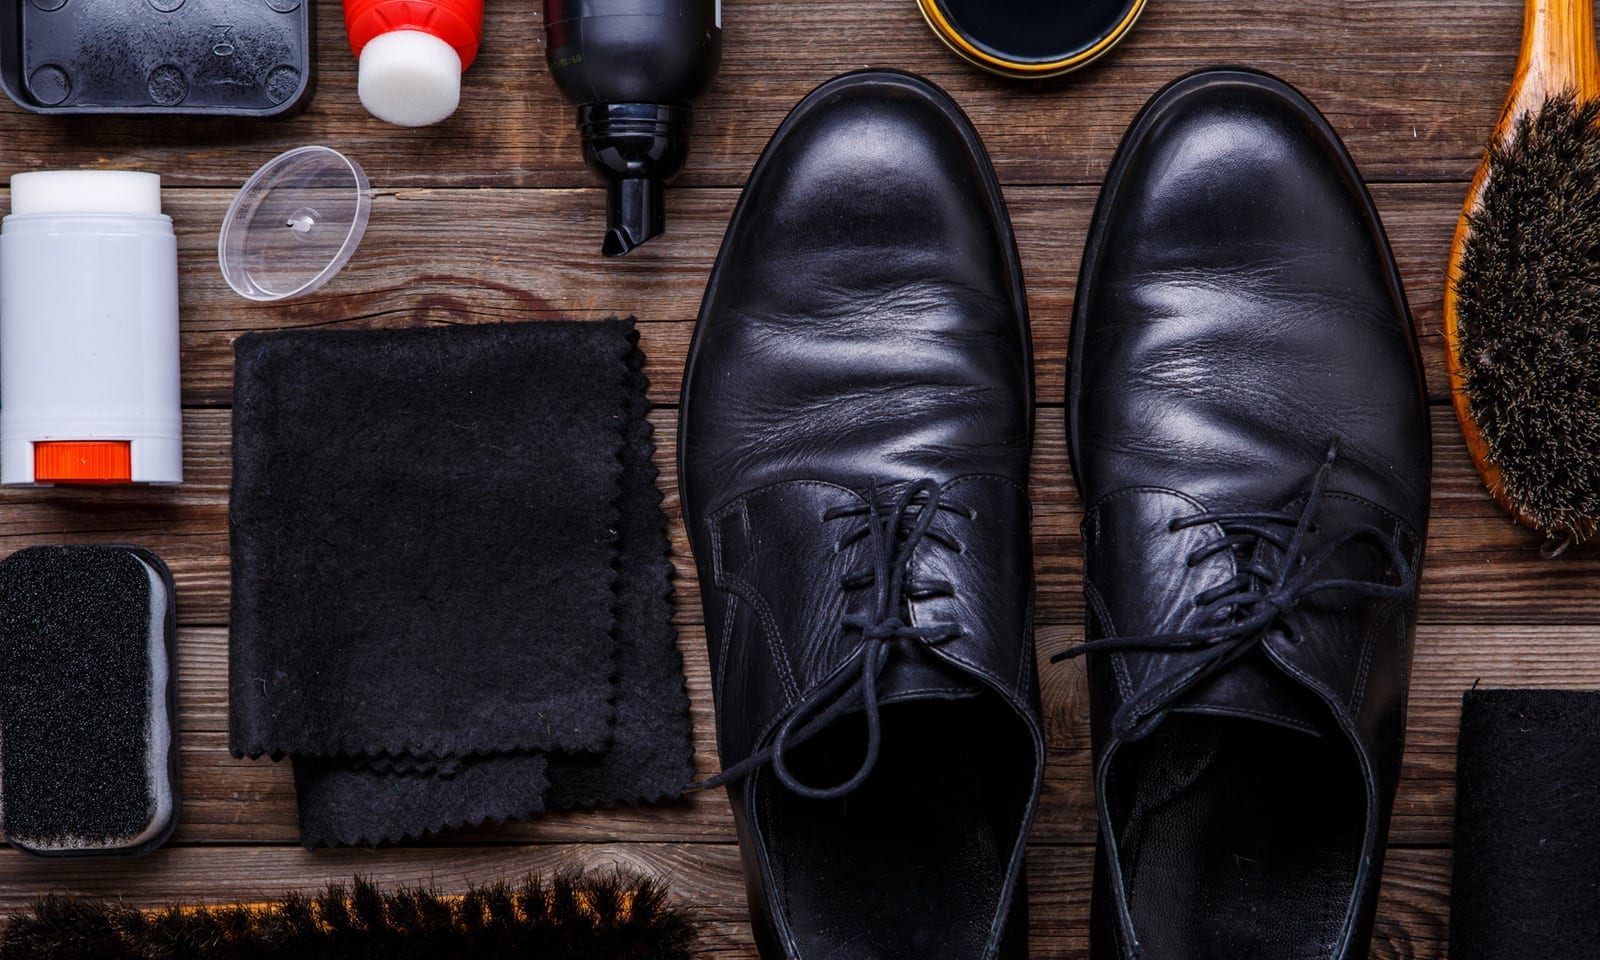 10 Best Shoe Shine Kits in 2020